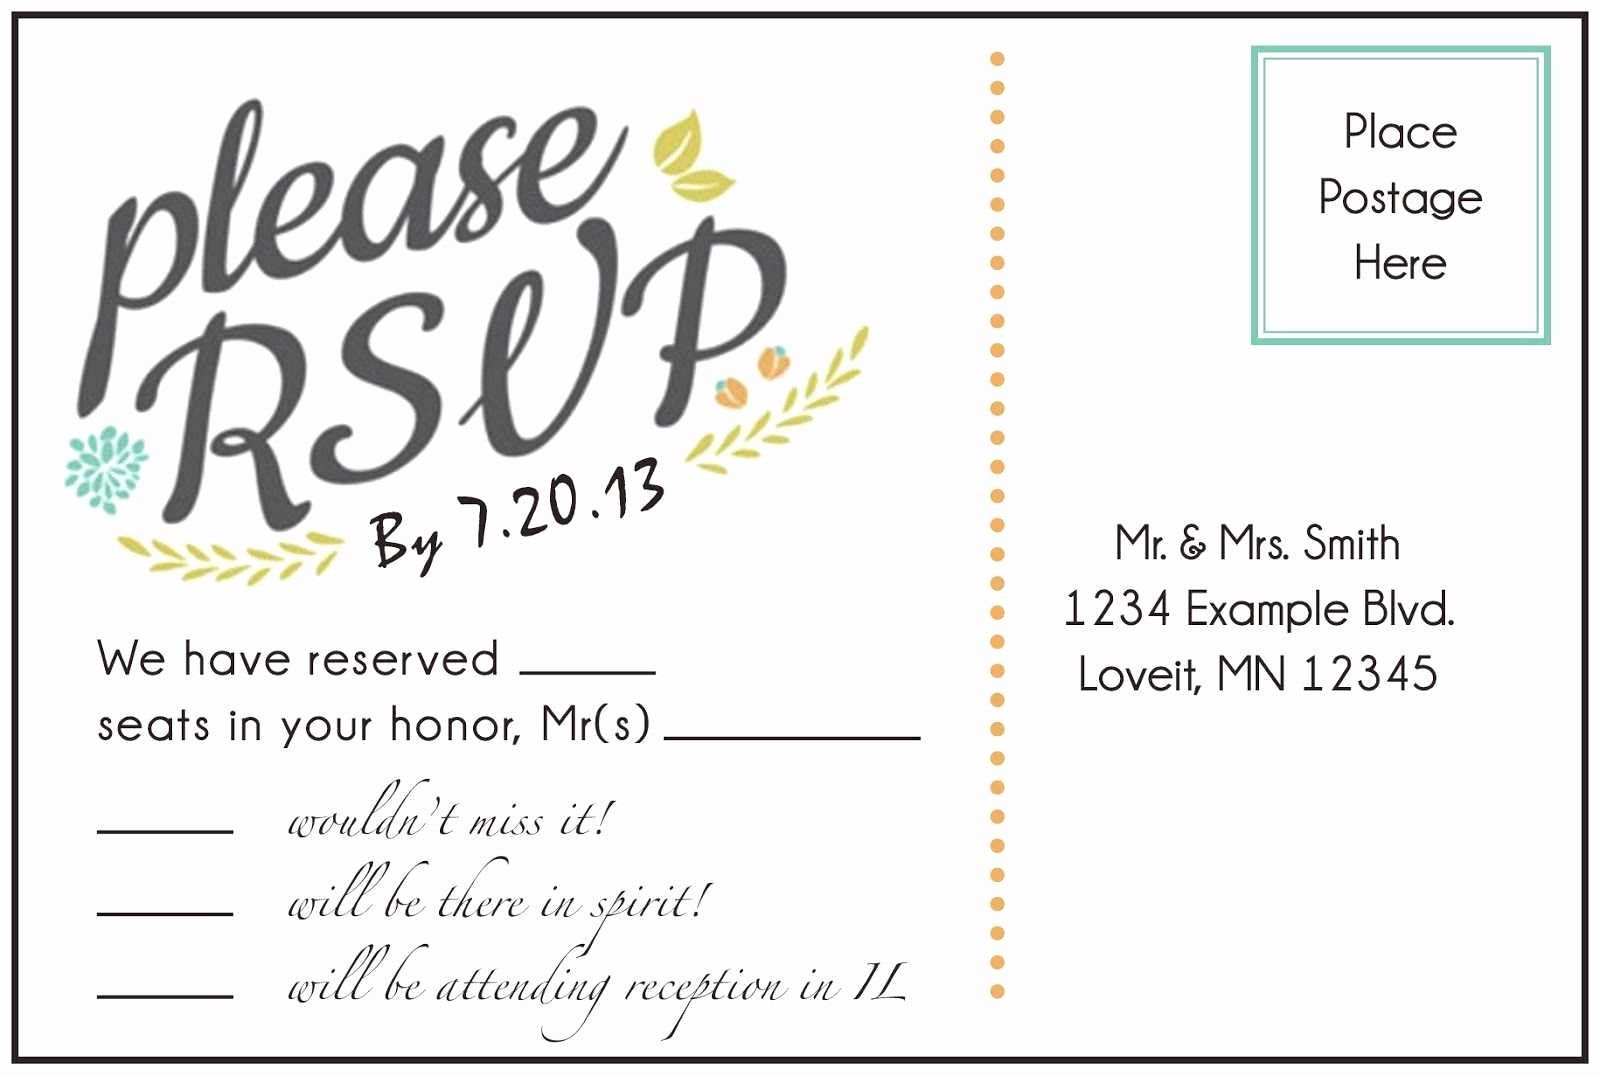 Wedding Response Card Templates Free Luxury Diy Rsvp Postcard Template Diy Do It Your Self